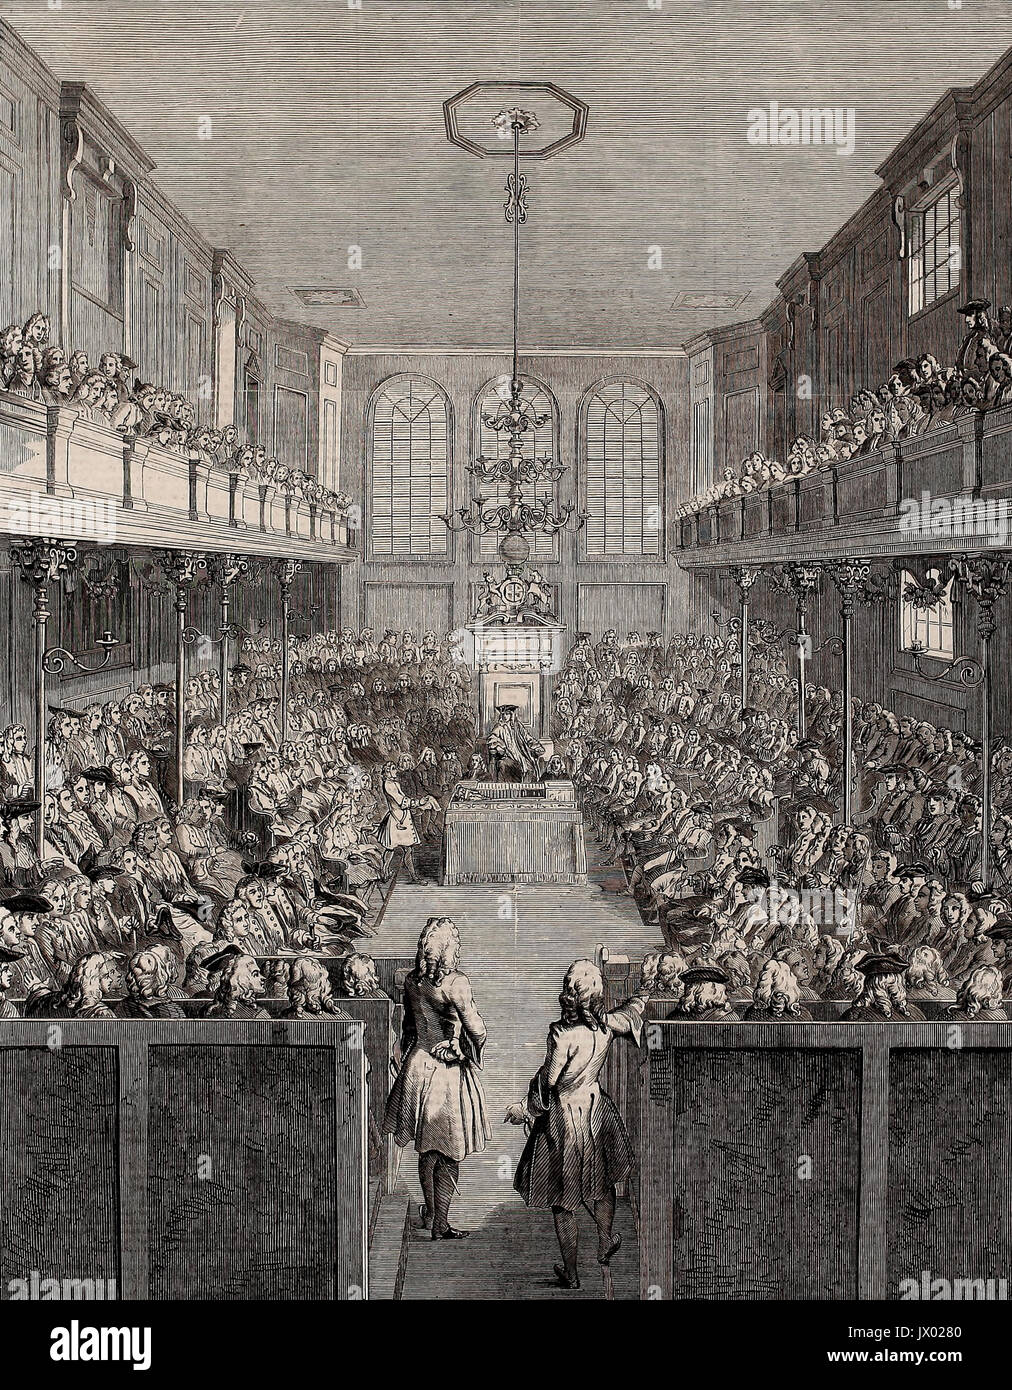 The House of Commons in Session, 1741-42 - Stock Image